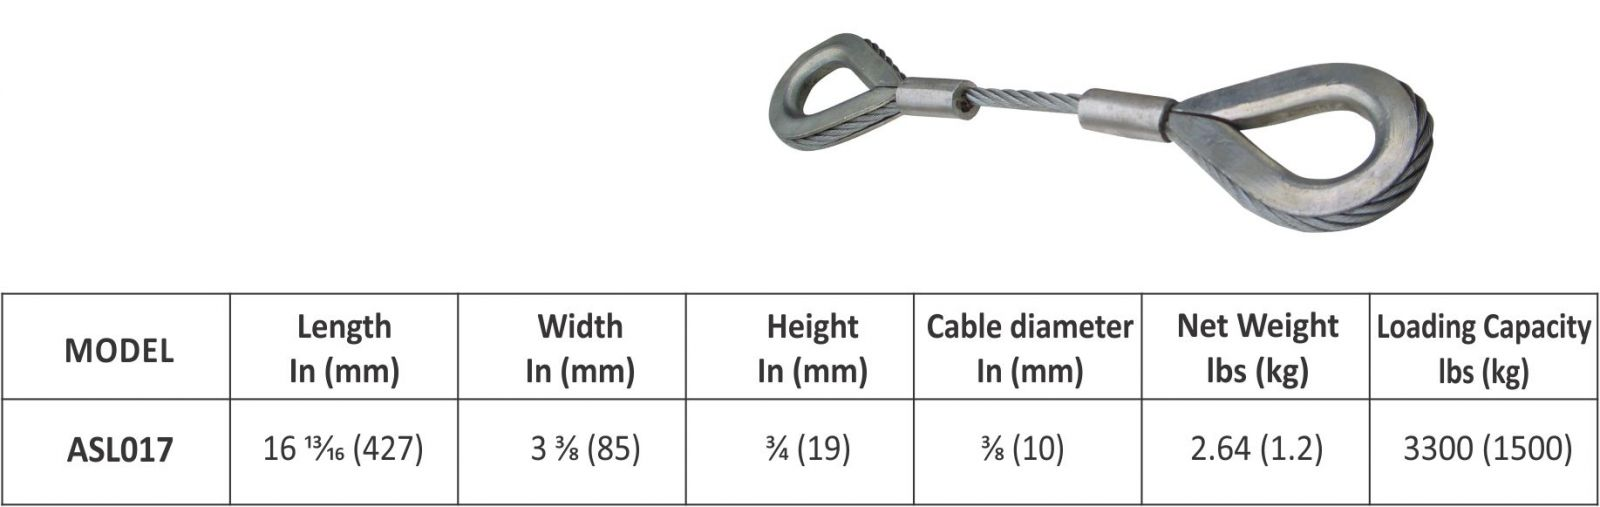 Cable Connect Sling Abaco Accessories Abaco Machines Abaco Asl017